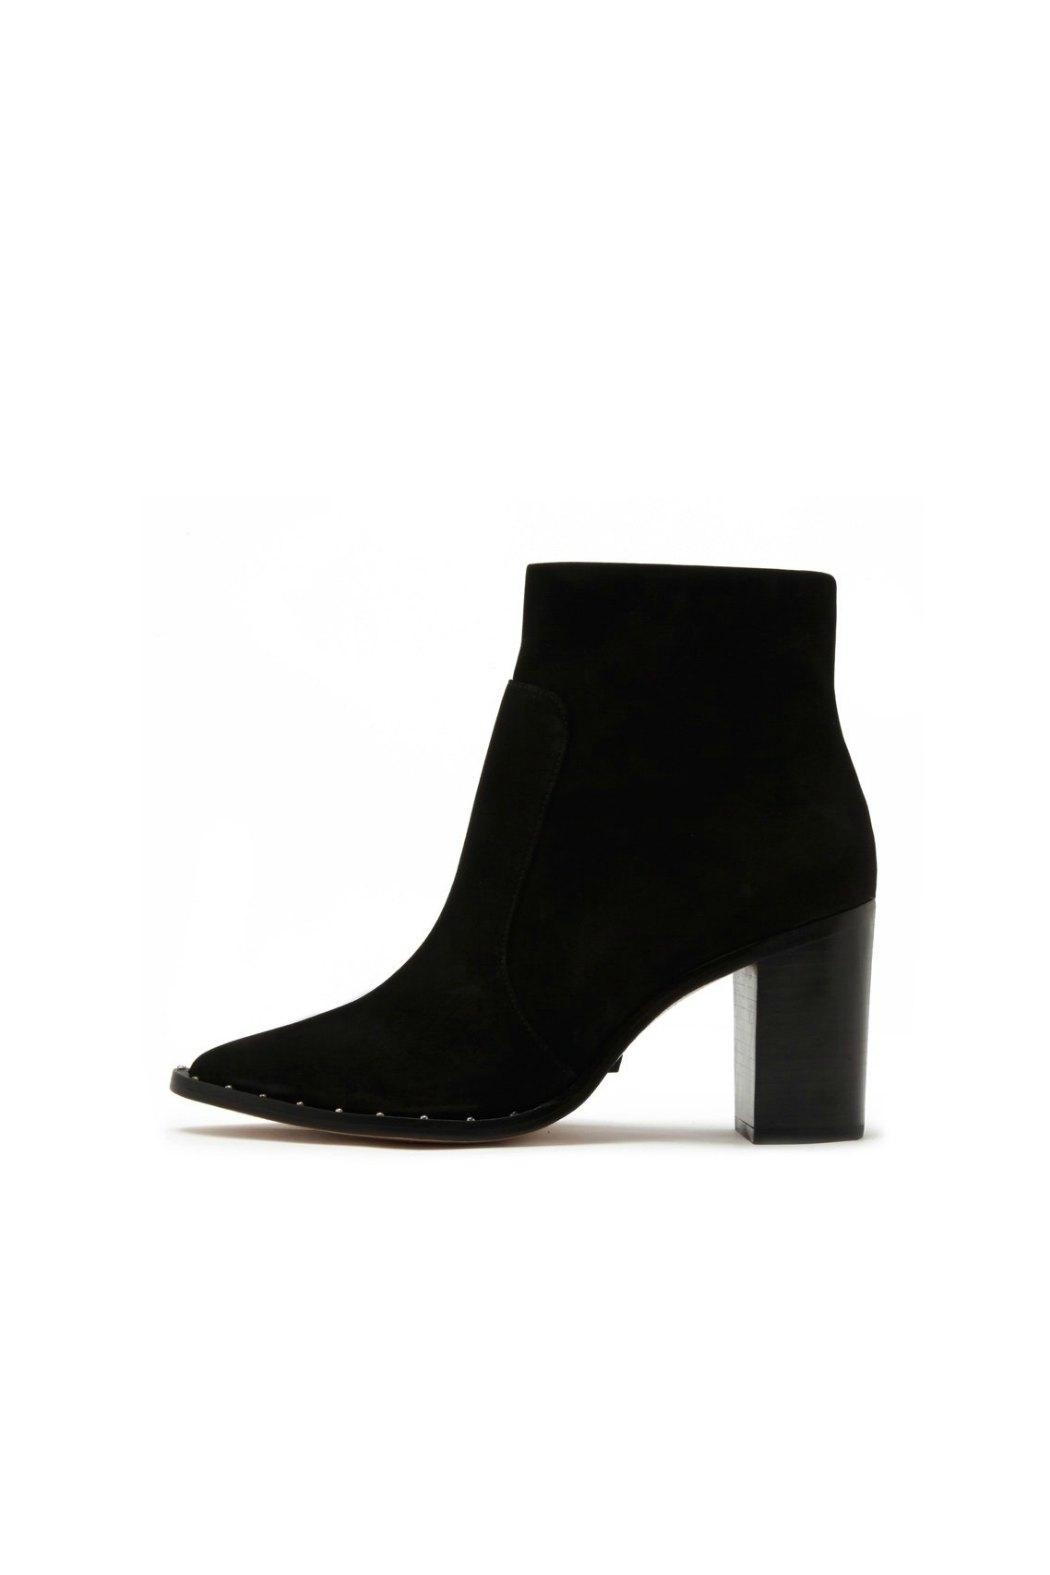 Schutz Pattys Studded Heeled-Boots - Front Cropped Image